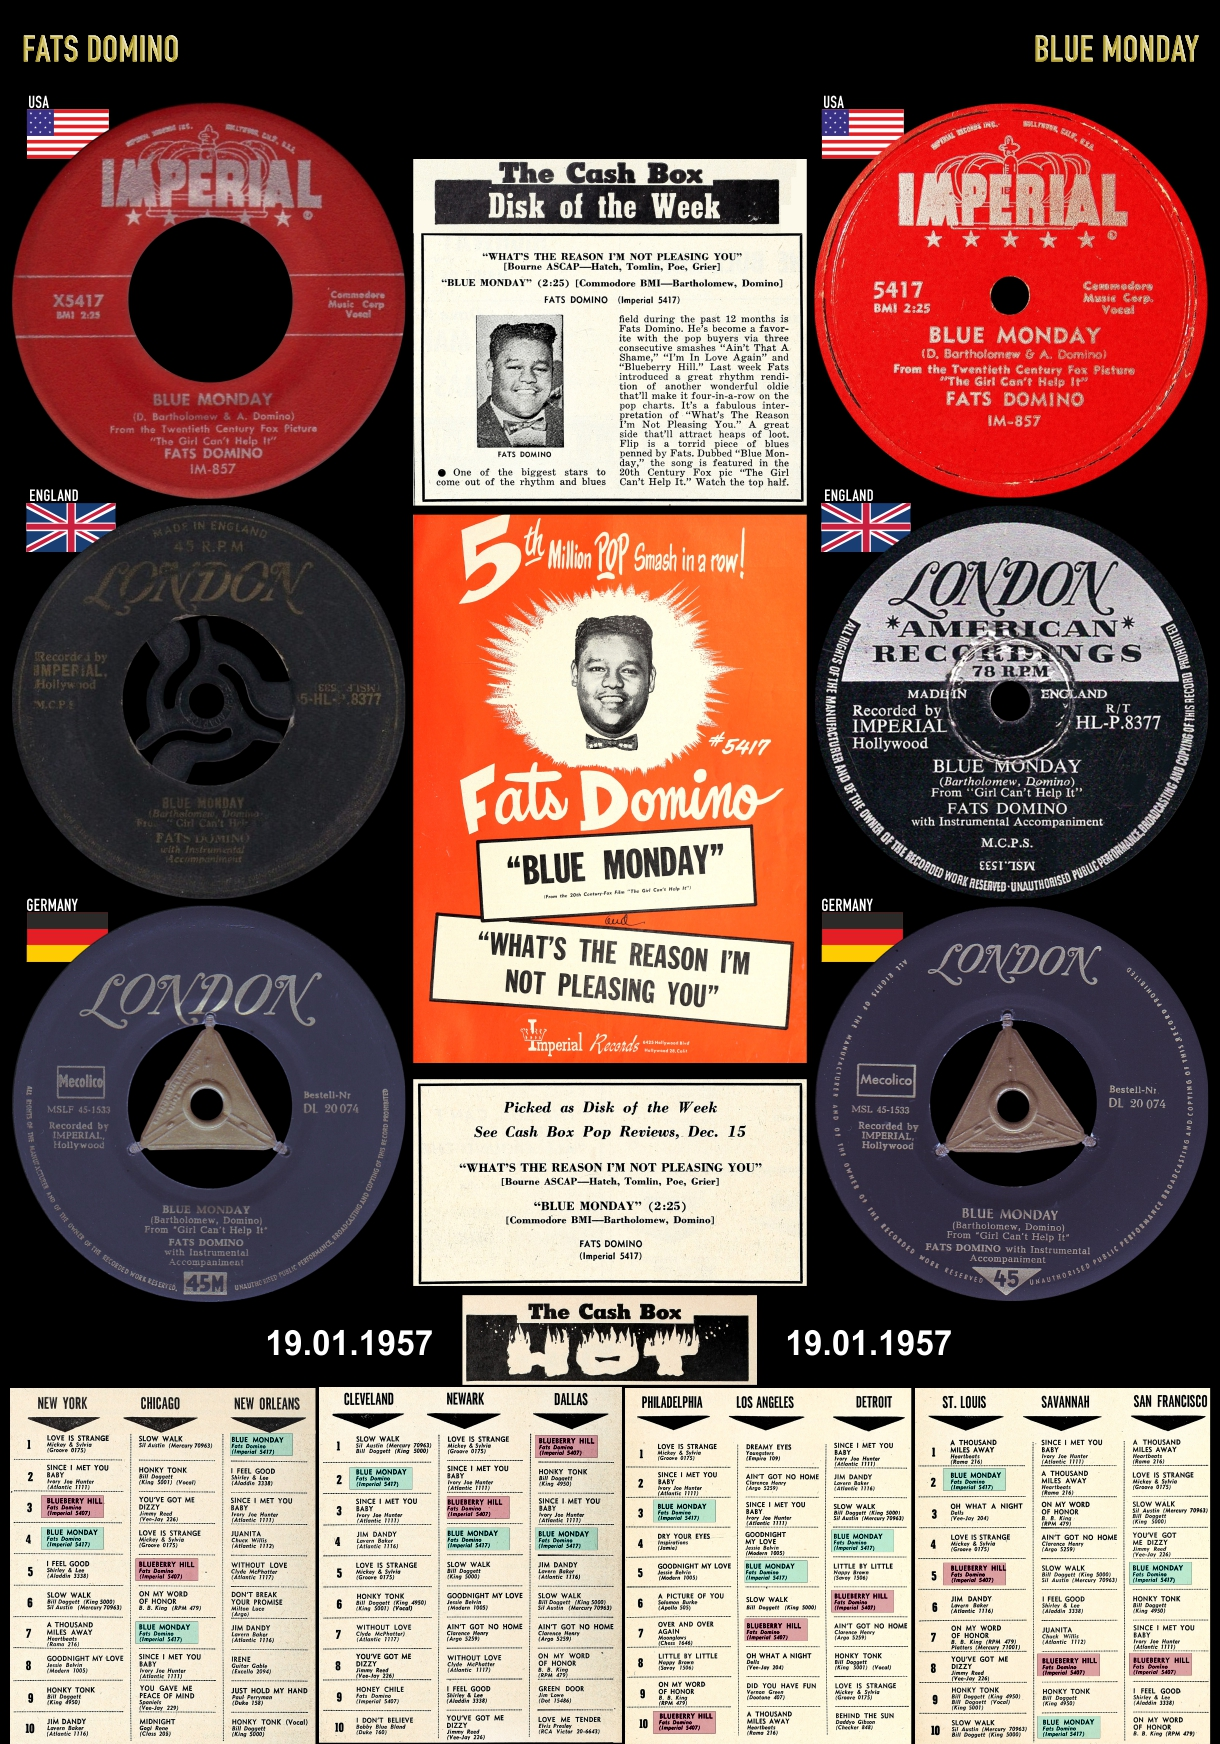 570105_Fats Domino_Blue Monday